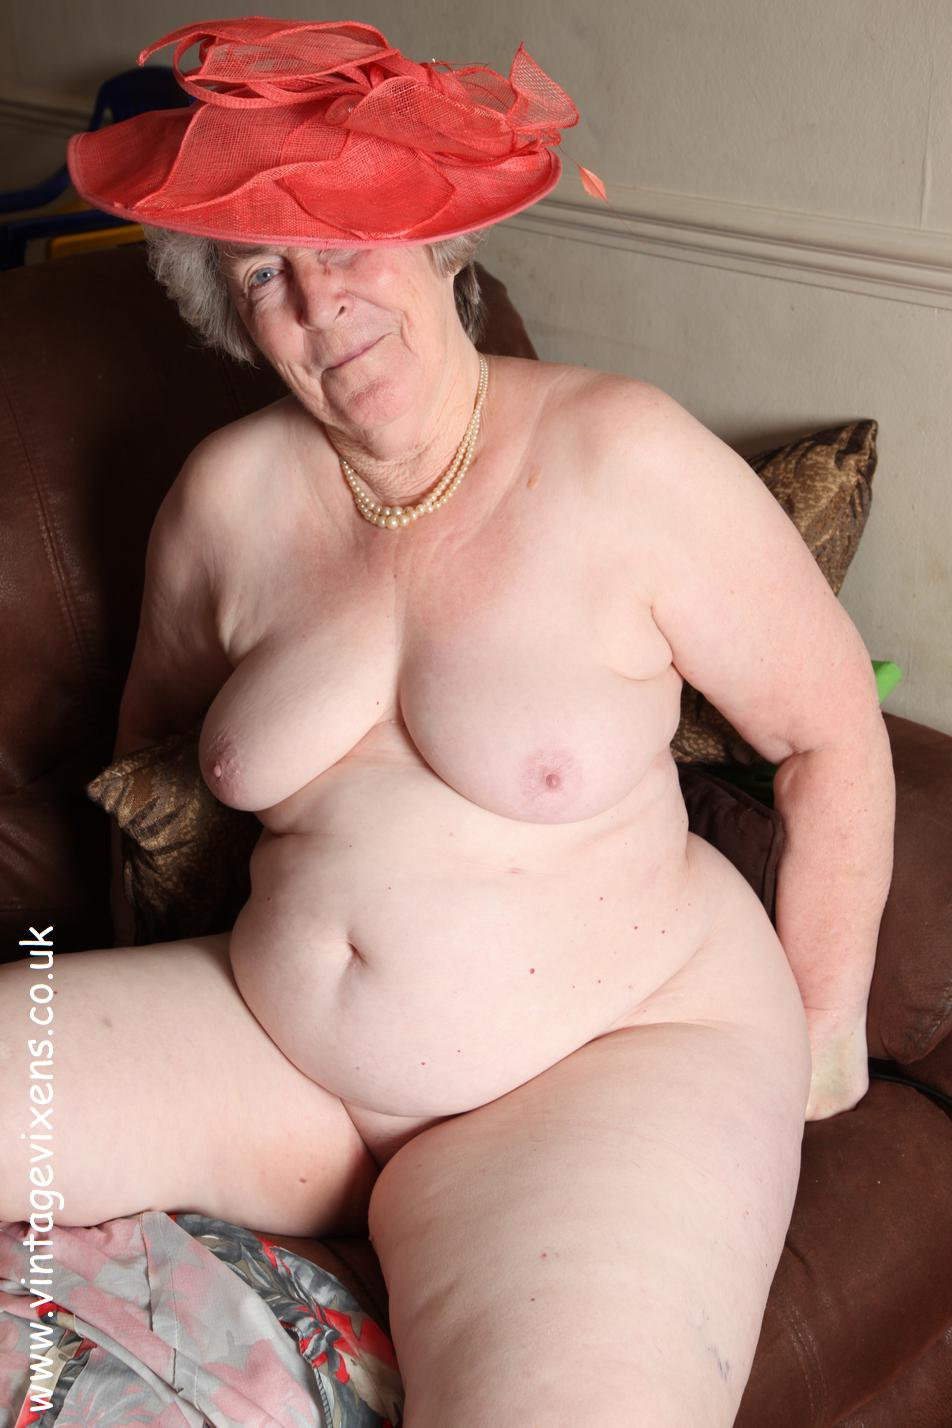 Archive Of Old Women Naked Grandmother In The Glamorous Hat-3312